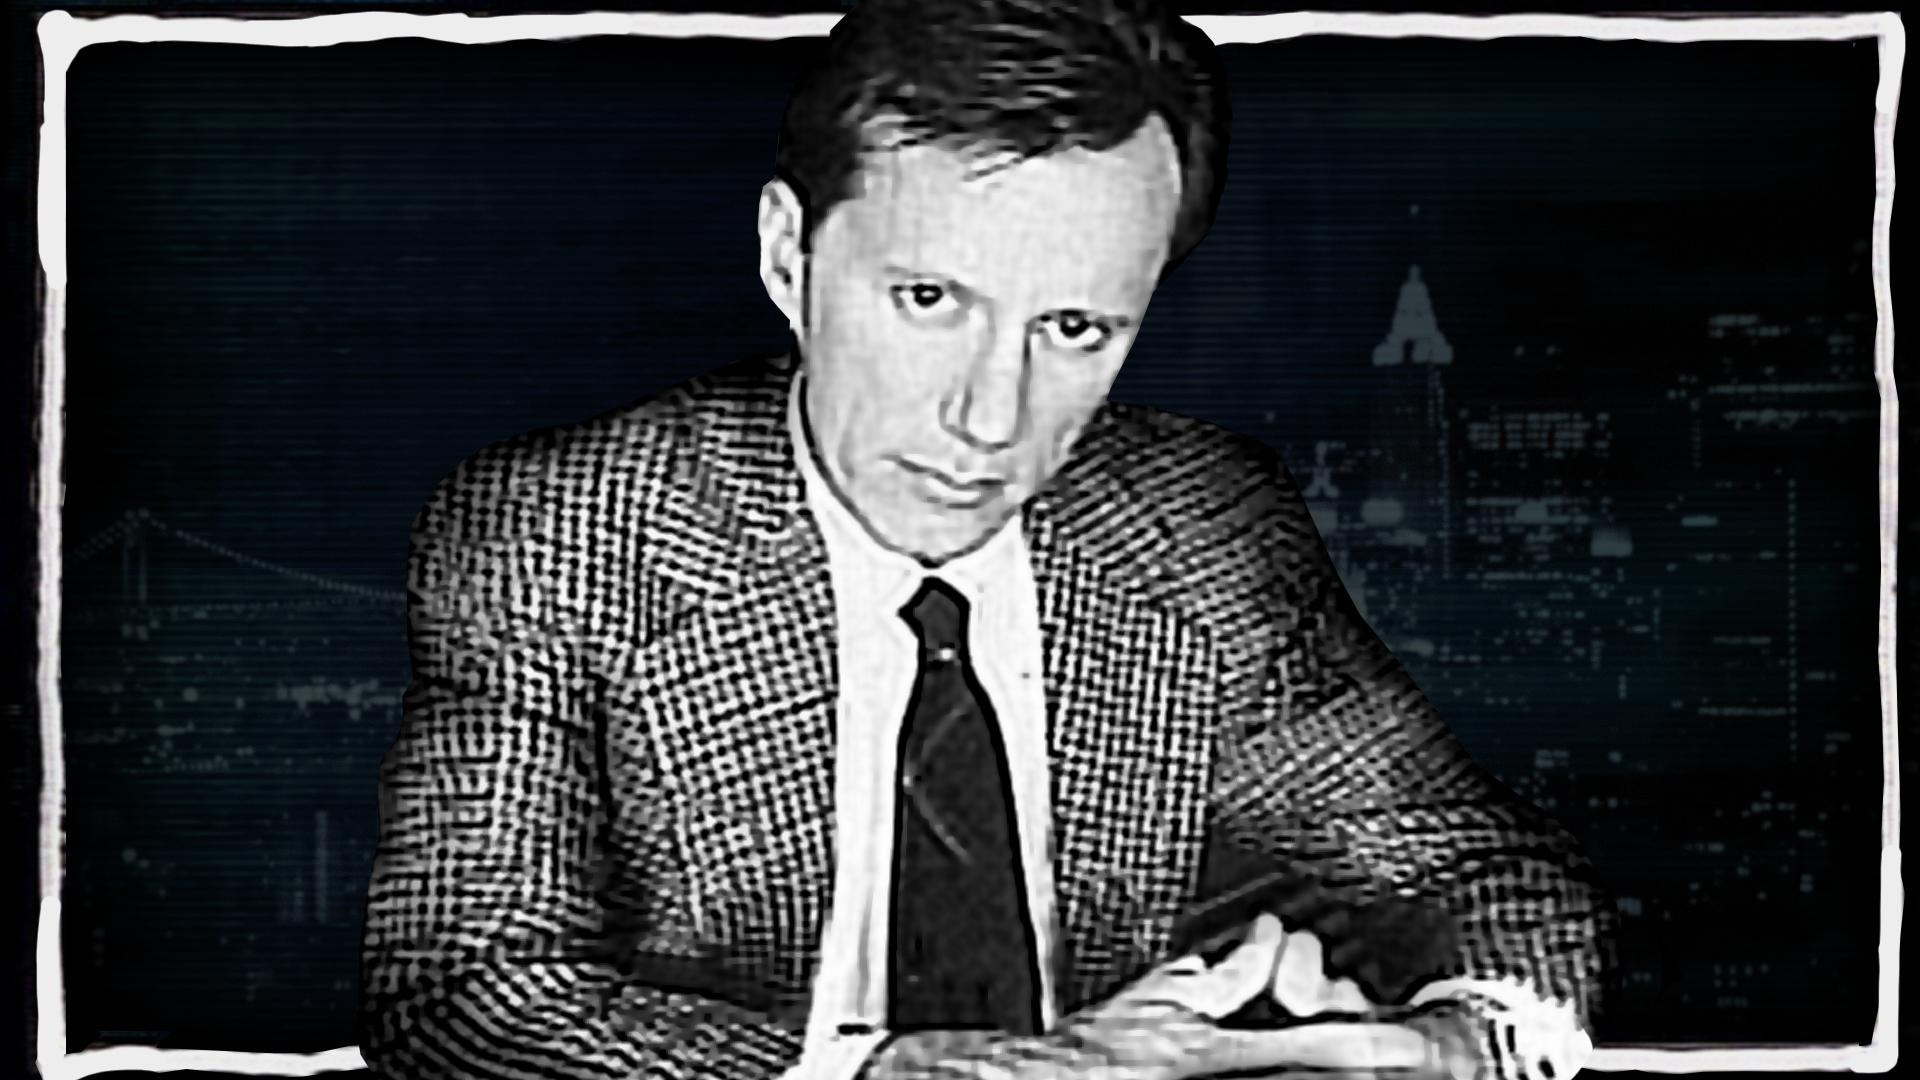 James Woods: October 28, 1989